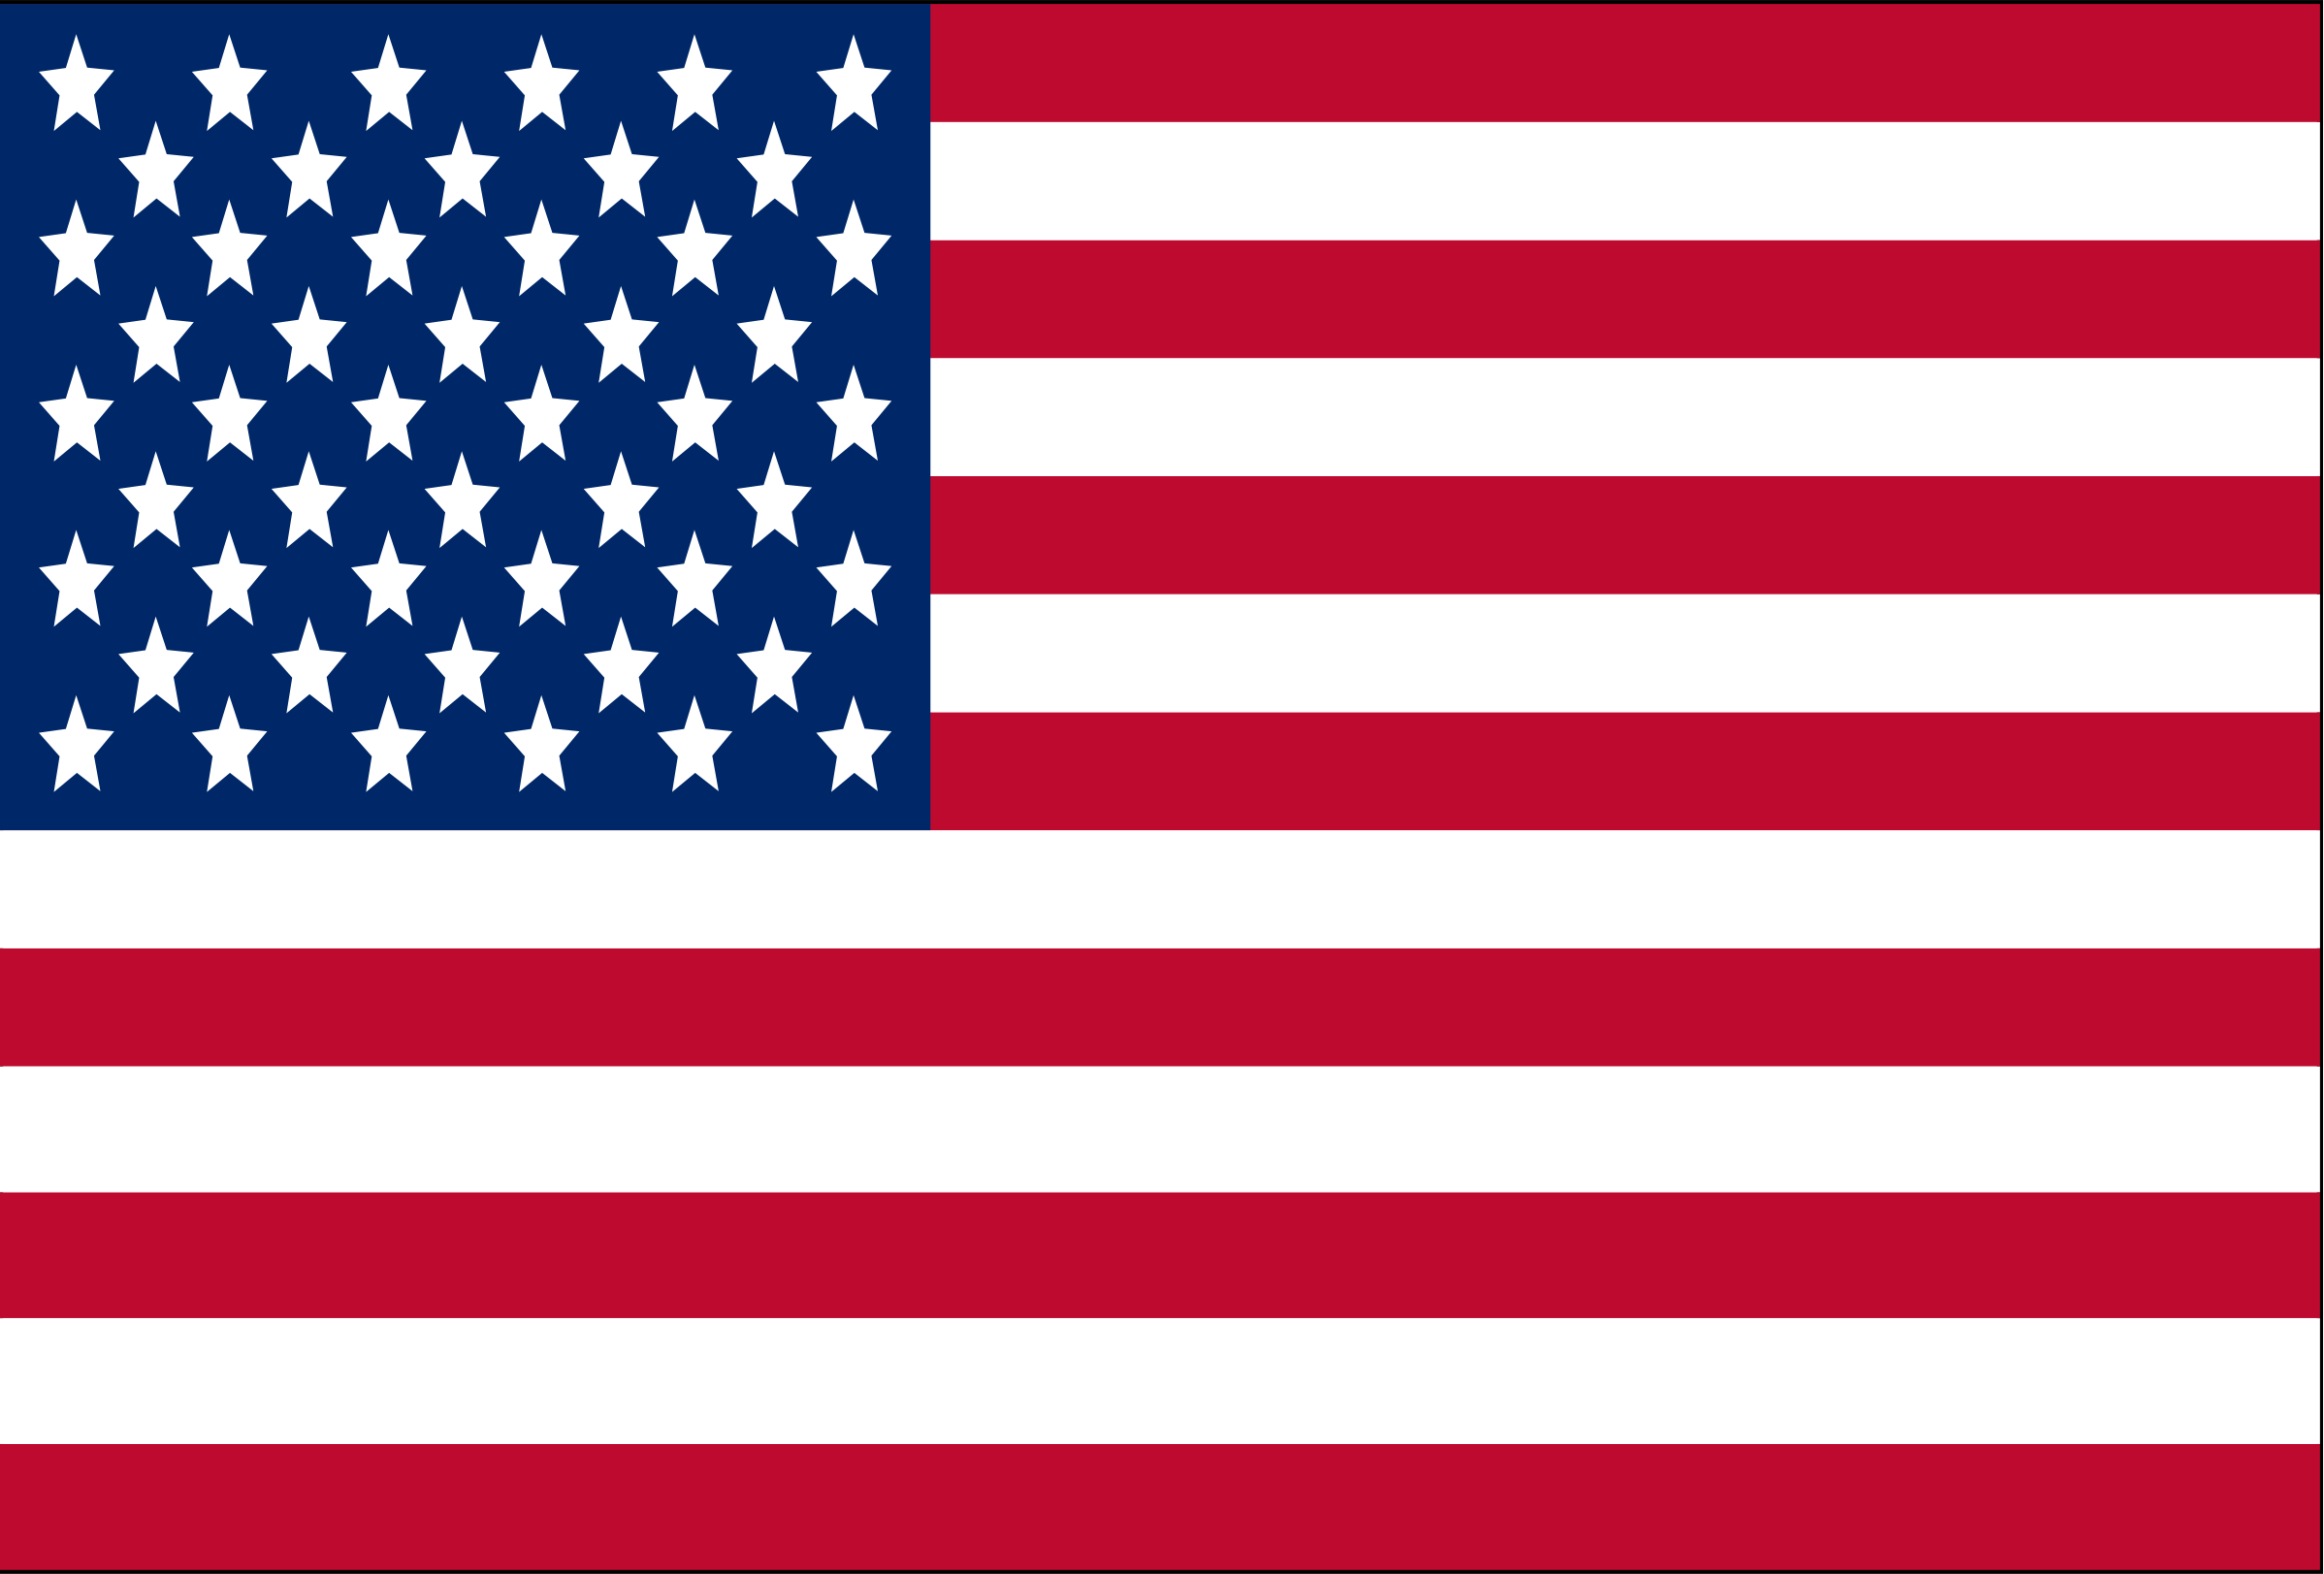 U.S.A. Flag by Caitmall